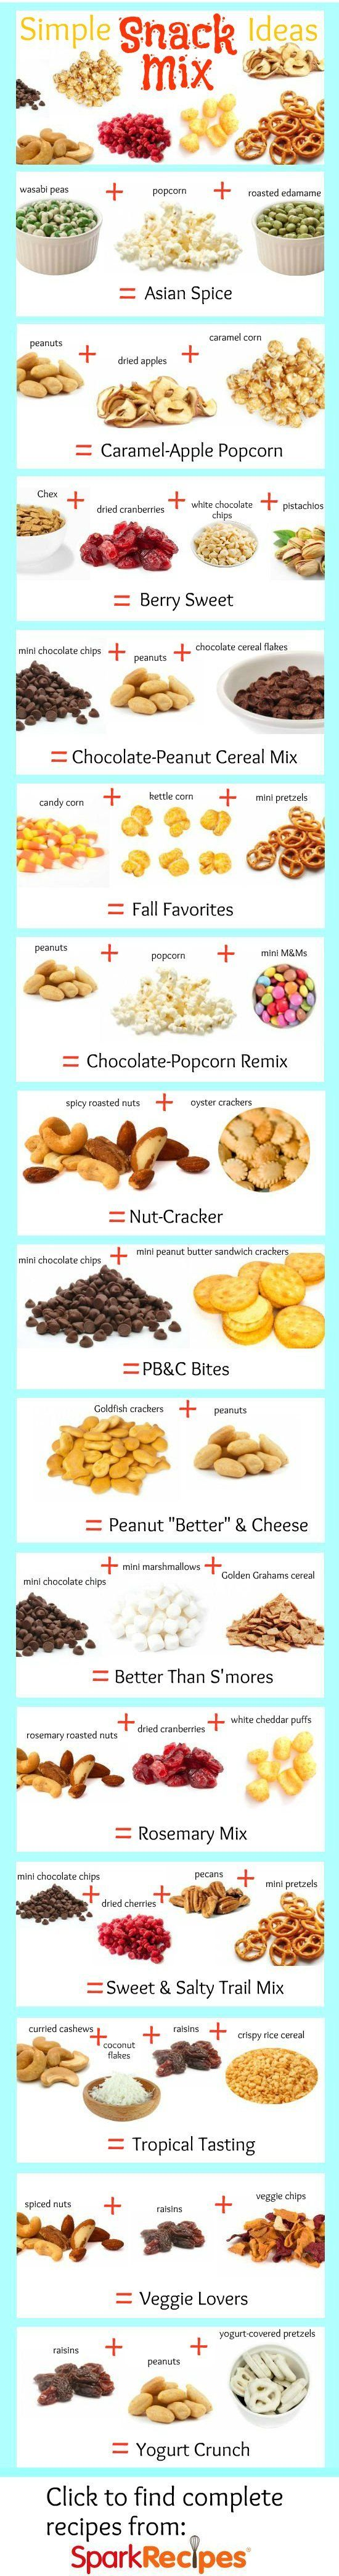 Super Simple Snack Mix Recipes. YUM--great ideas here! | via @SparkPeople #snacks #smartsnacks #food